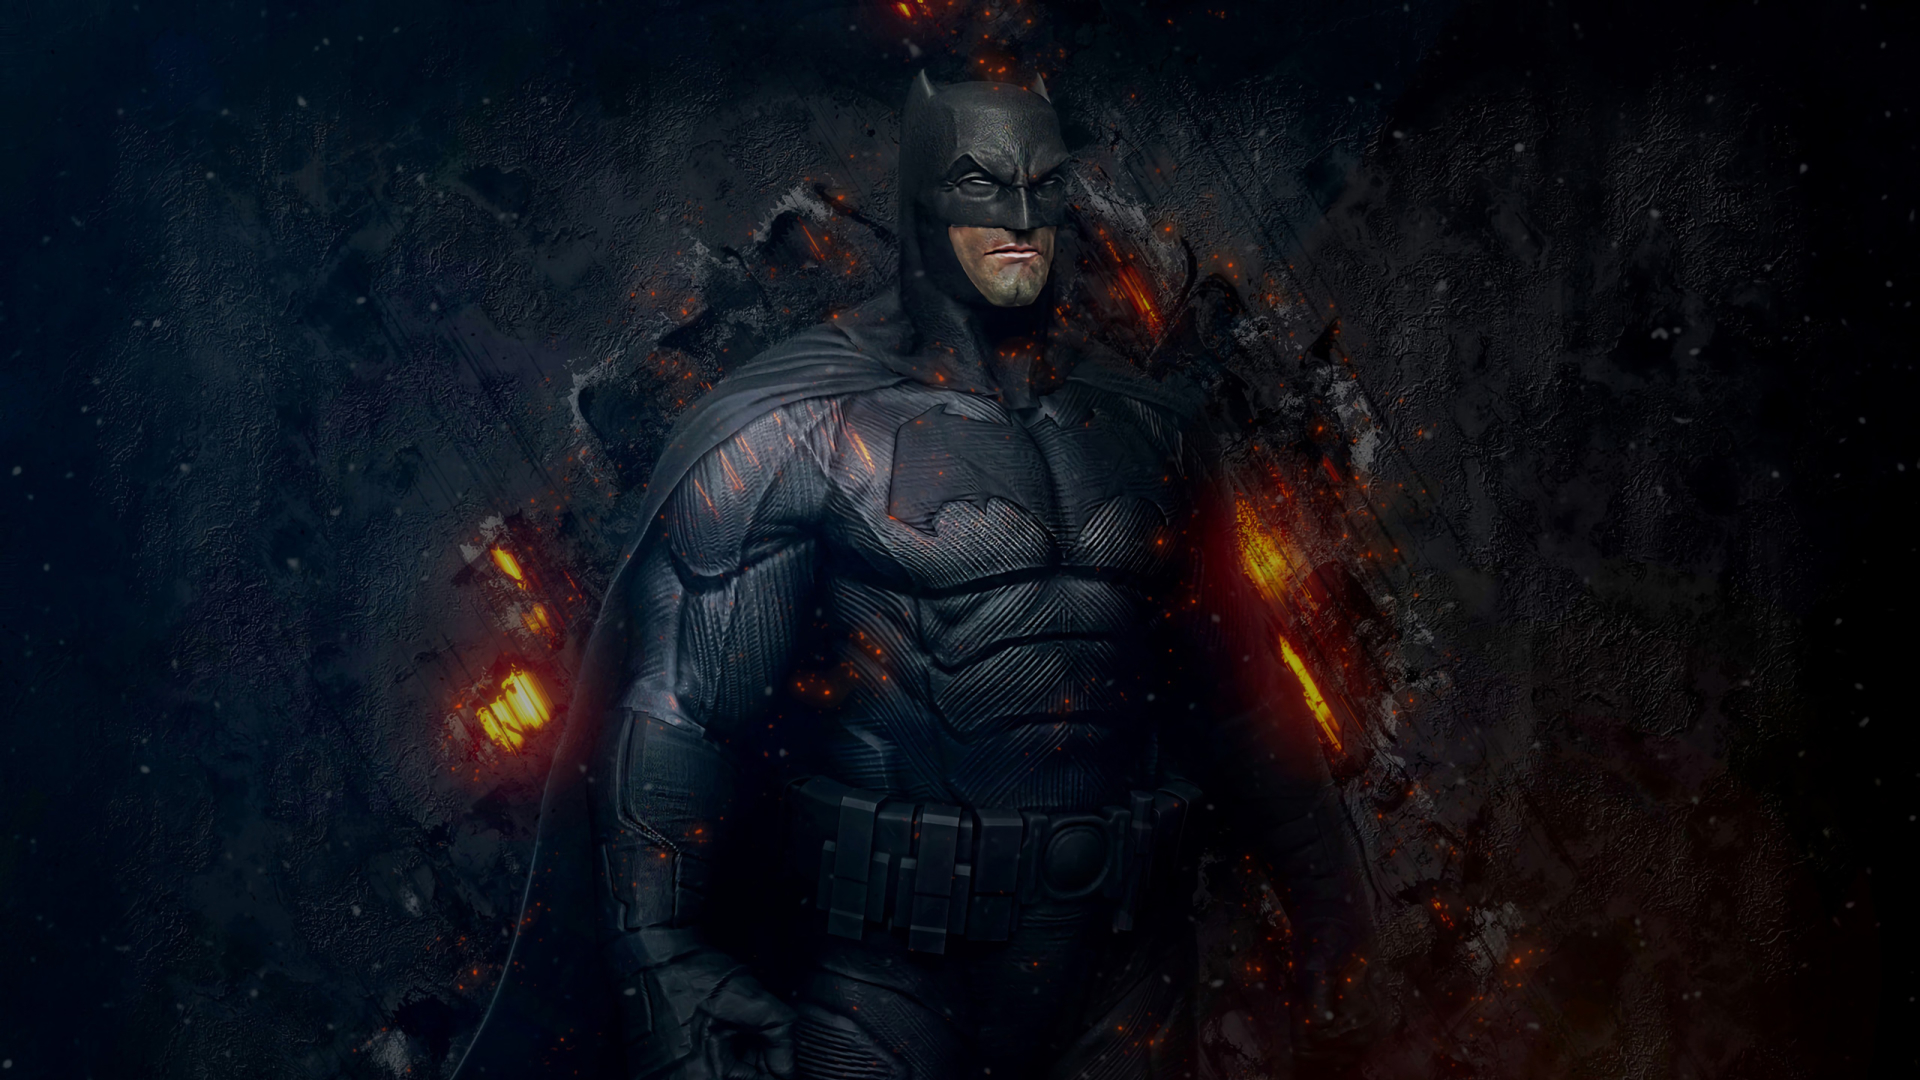 1920x1080 Batman 1080P Laptop Full HD Wallpaper, HD ...